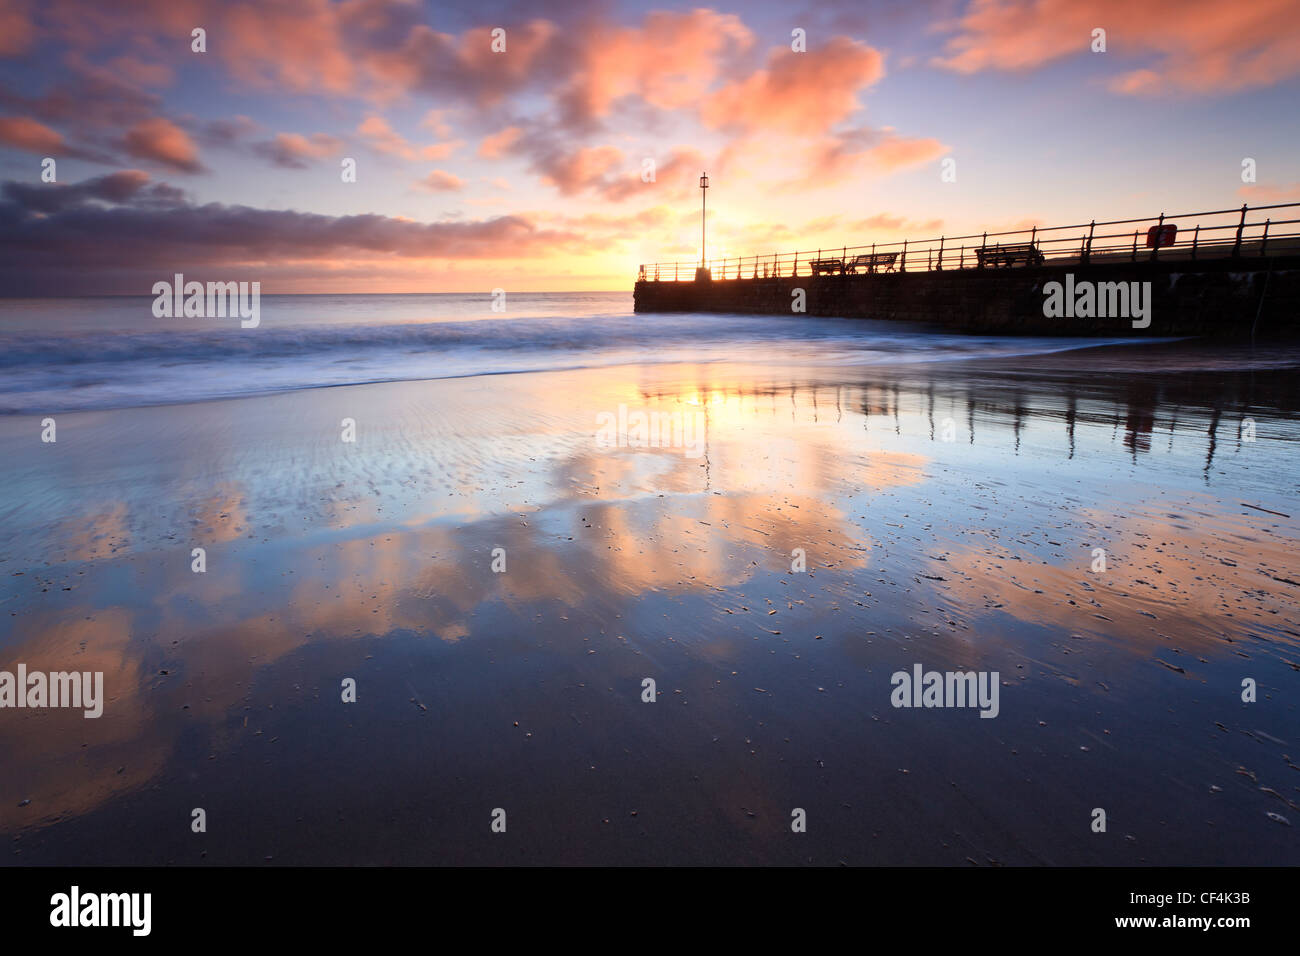 The banjo-shaped 'new jetty' on Swanage Beach at sunrise. - Stock Image